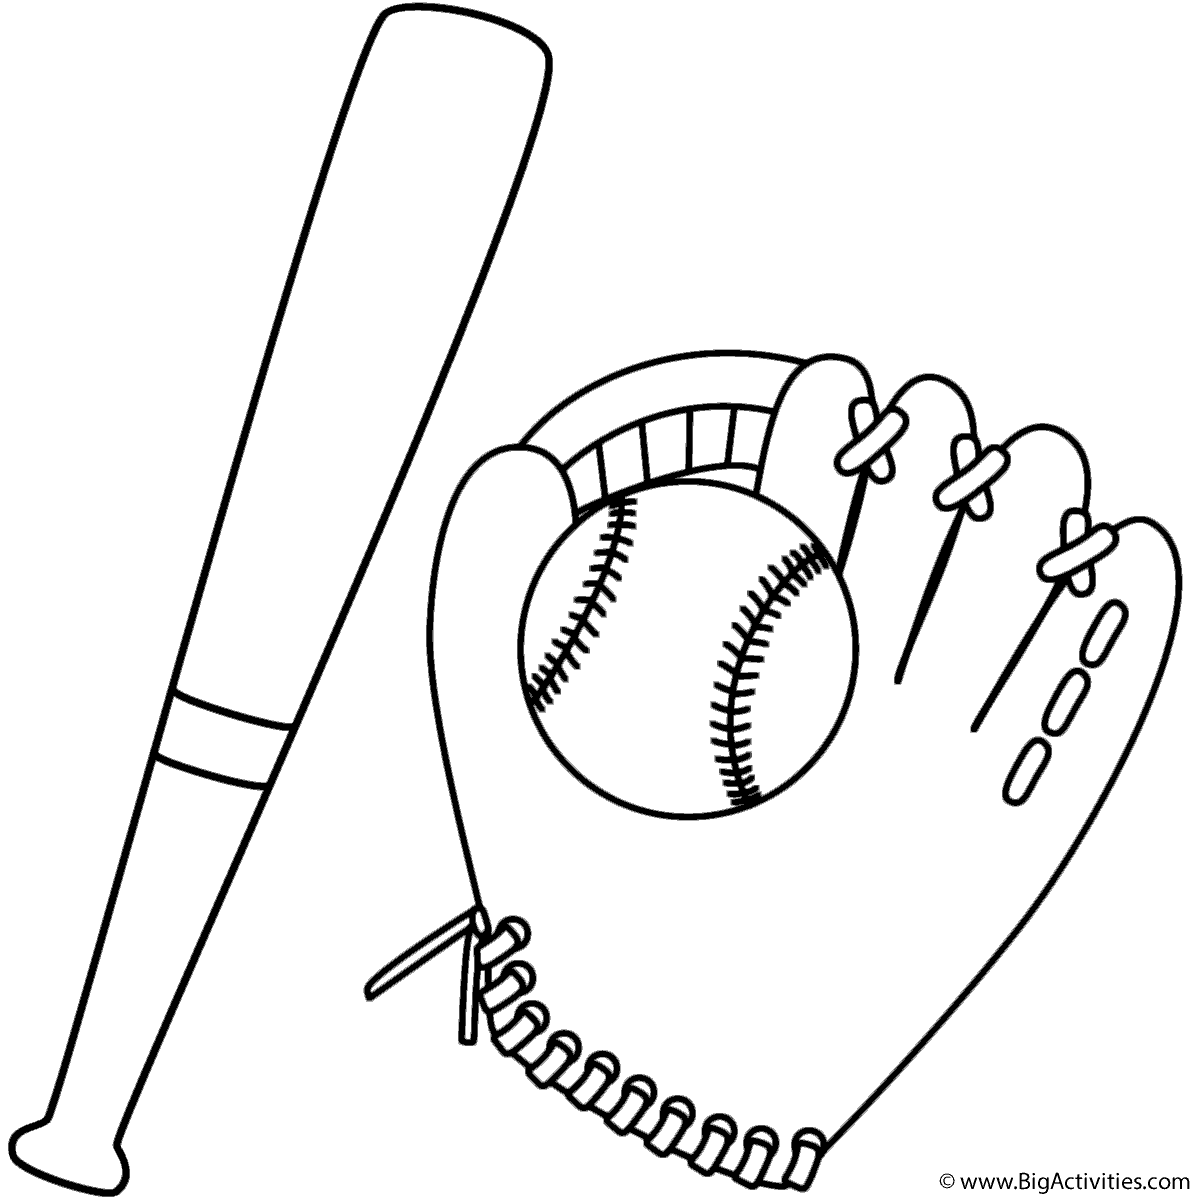 baseball bat coloring pages - photo#8